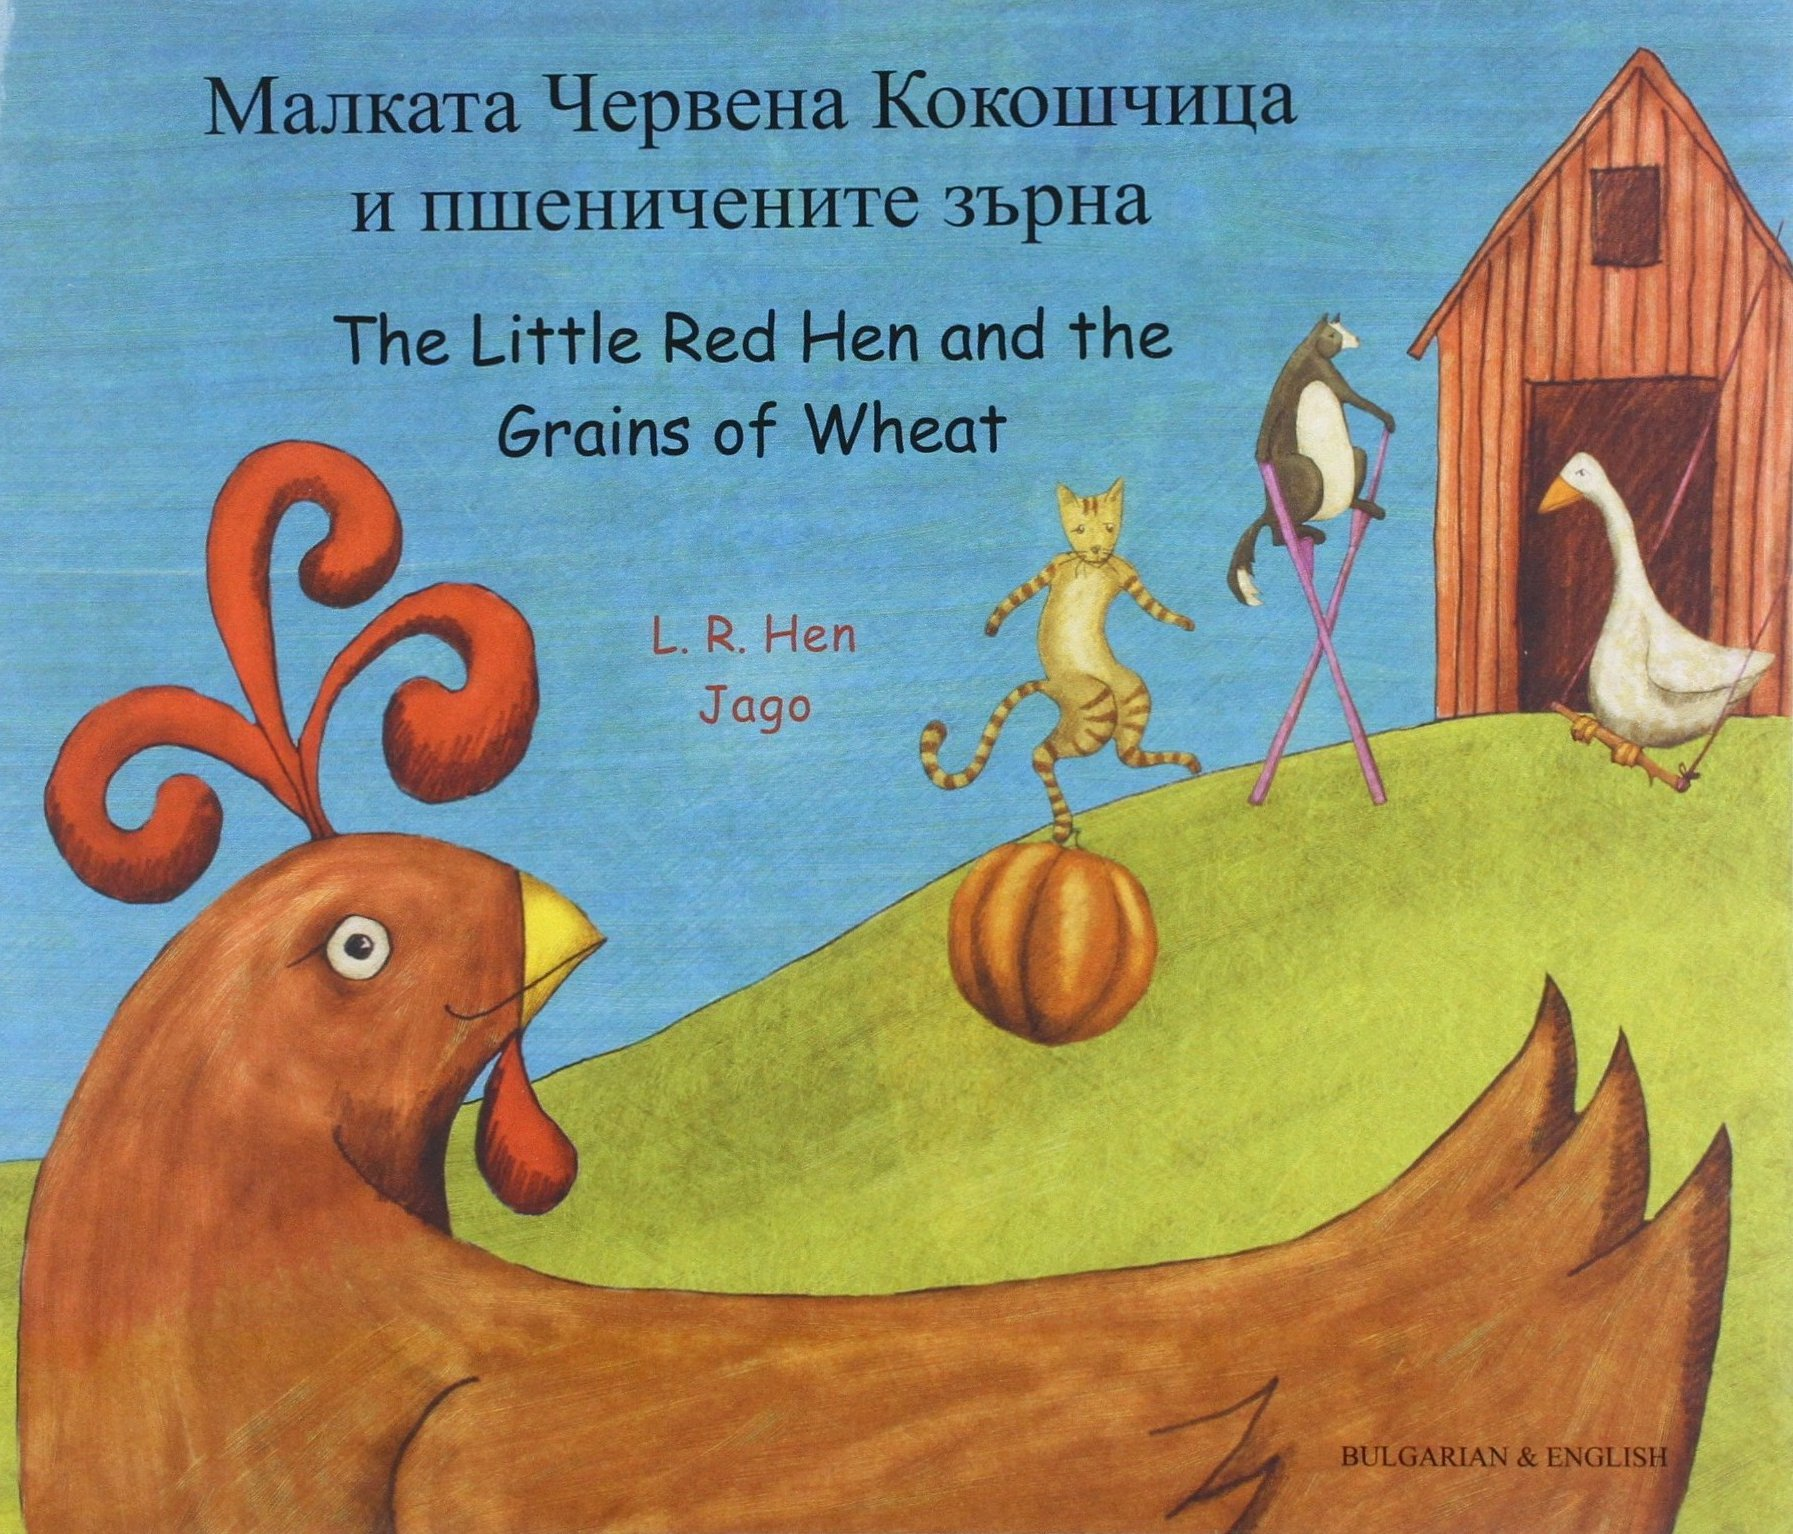 The Little Red Hen and the Grains of Wheat in Bulgarian and English (English and Bulgarian Edition) PDF Text fb2 book